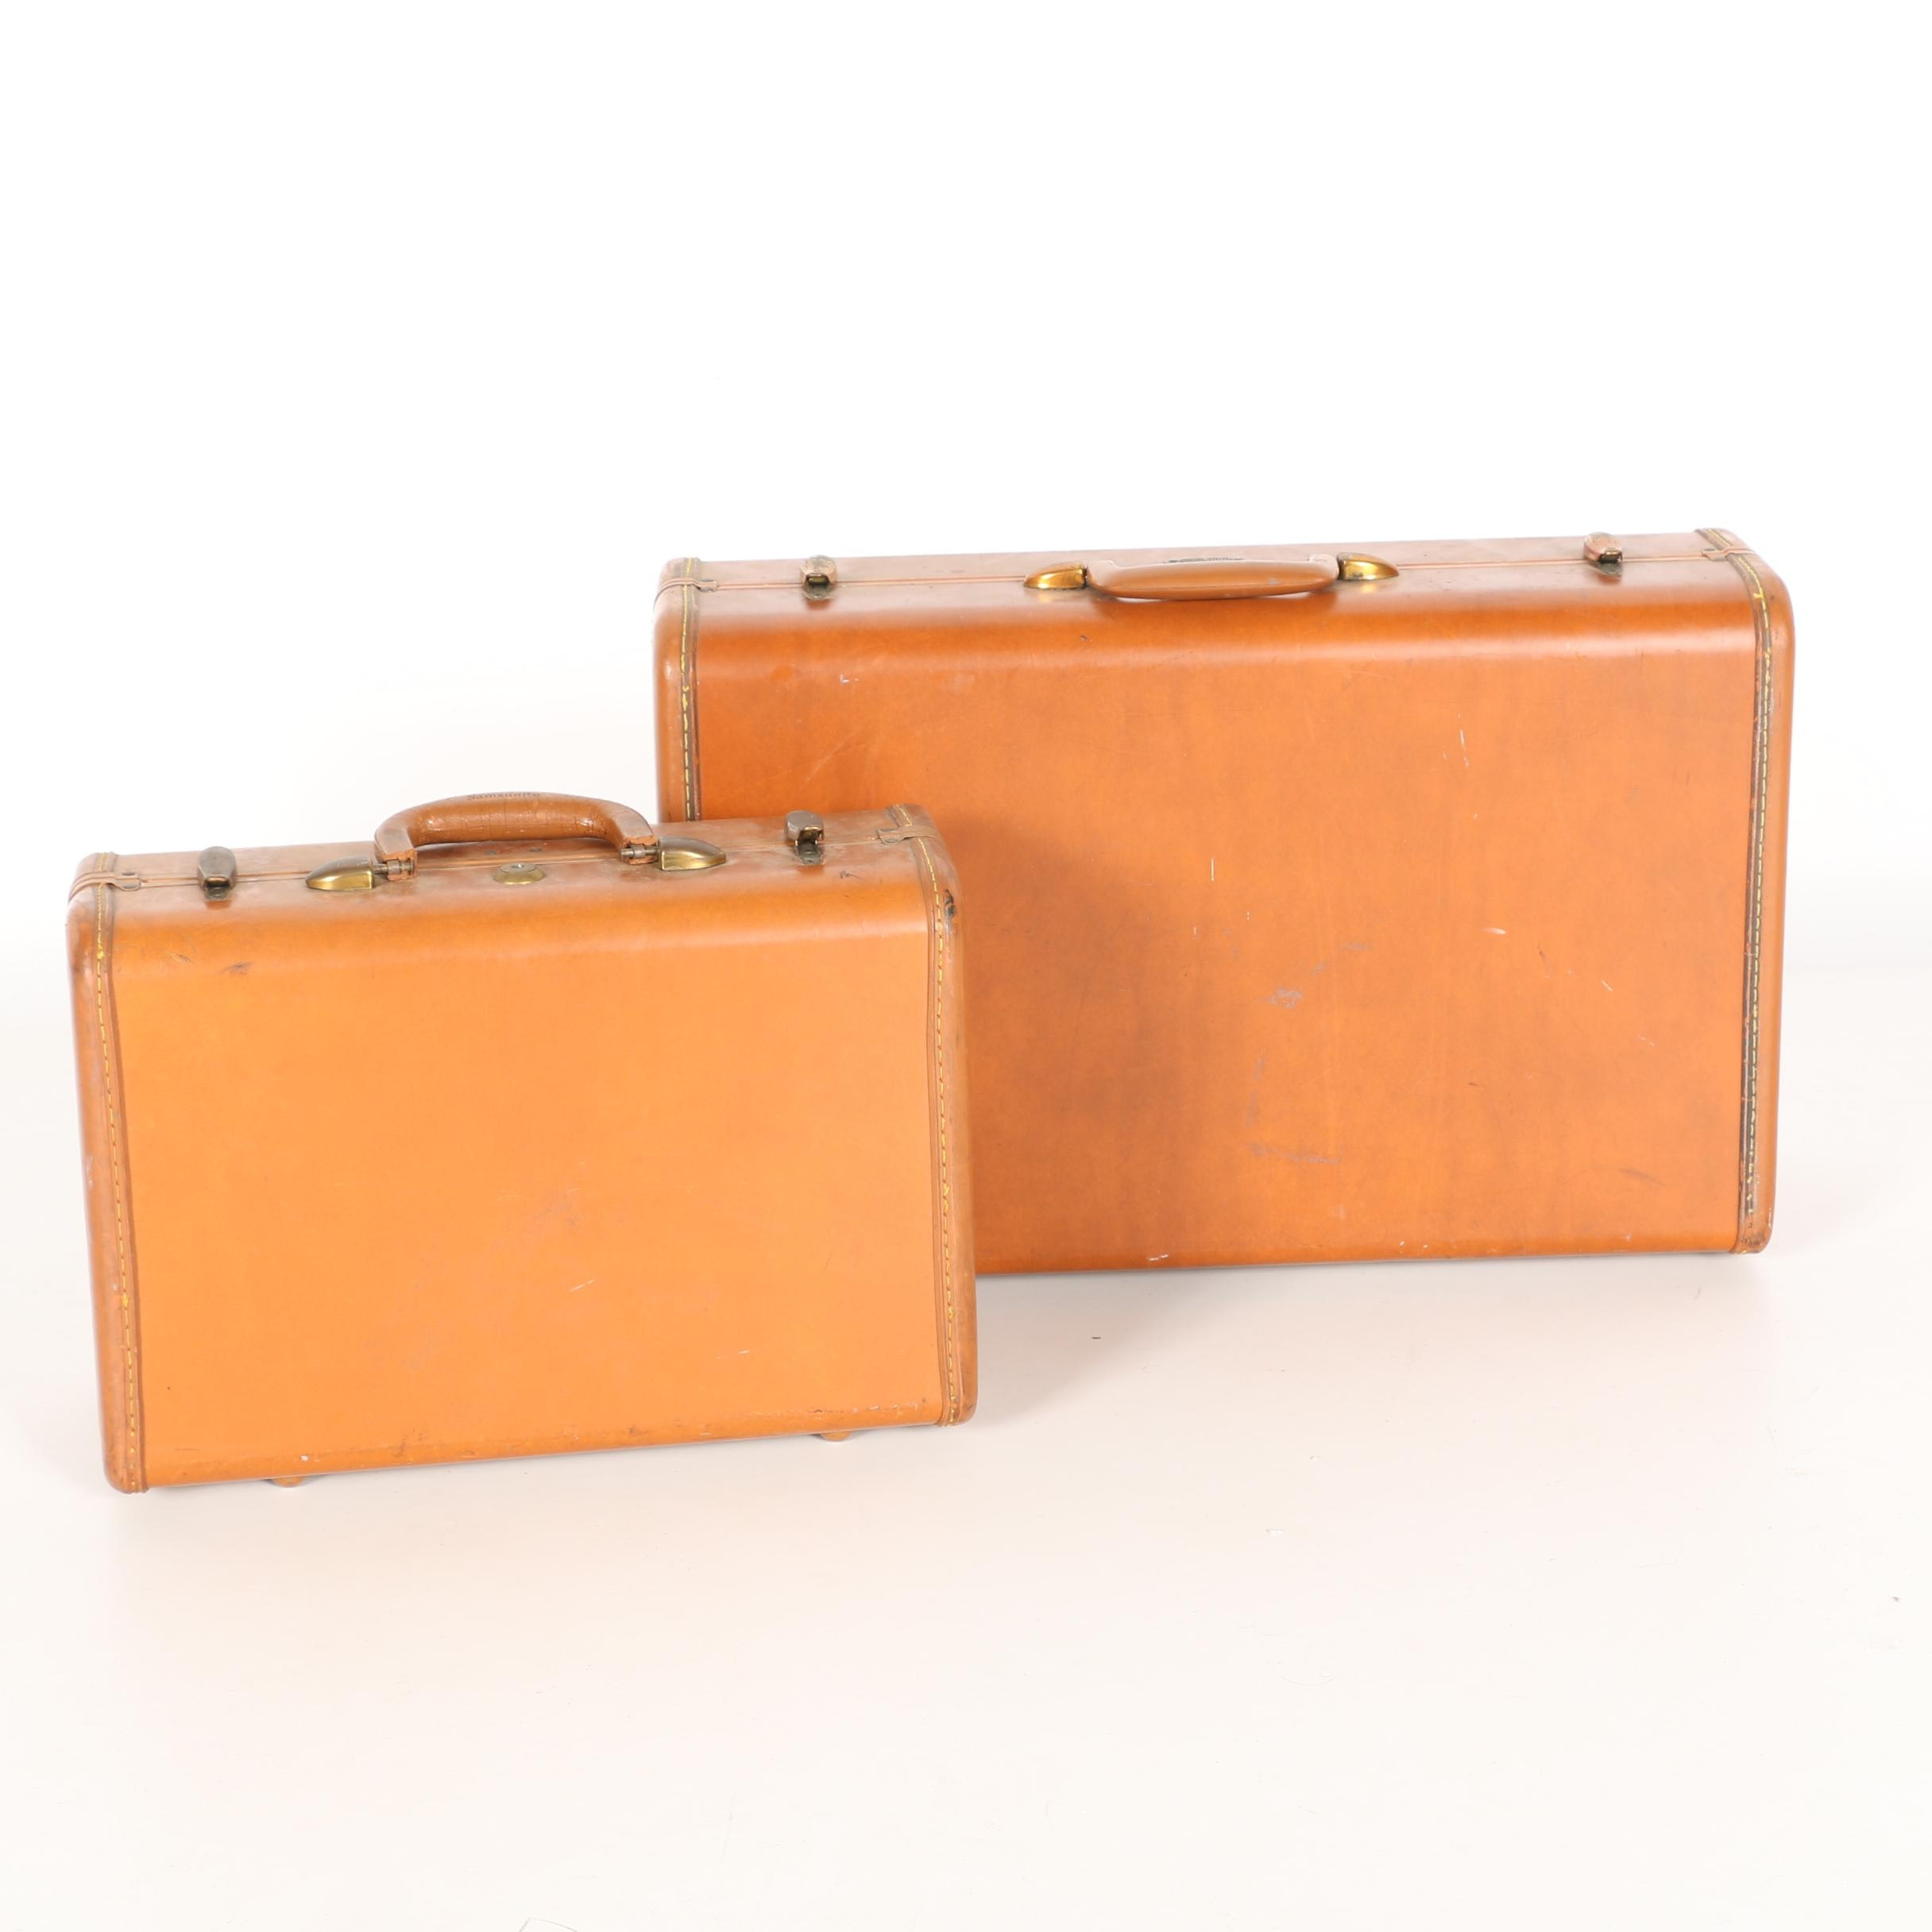 Complementary Samsonite Suitcases